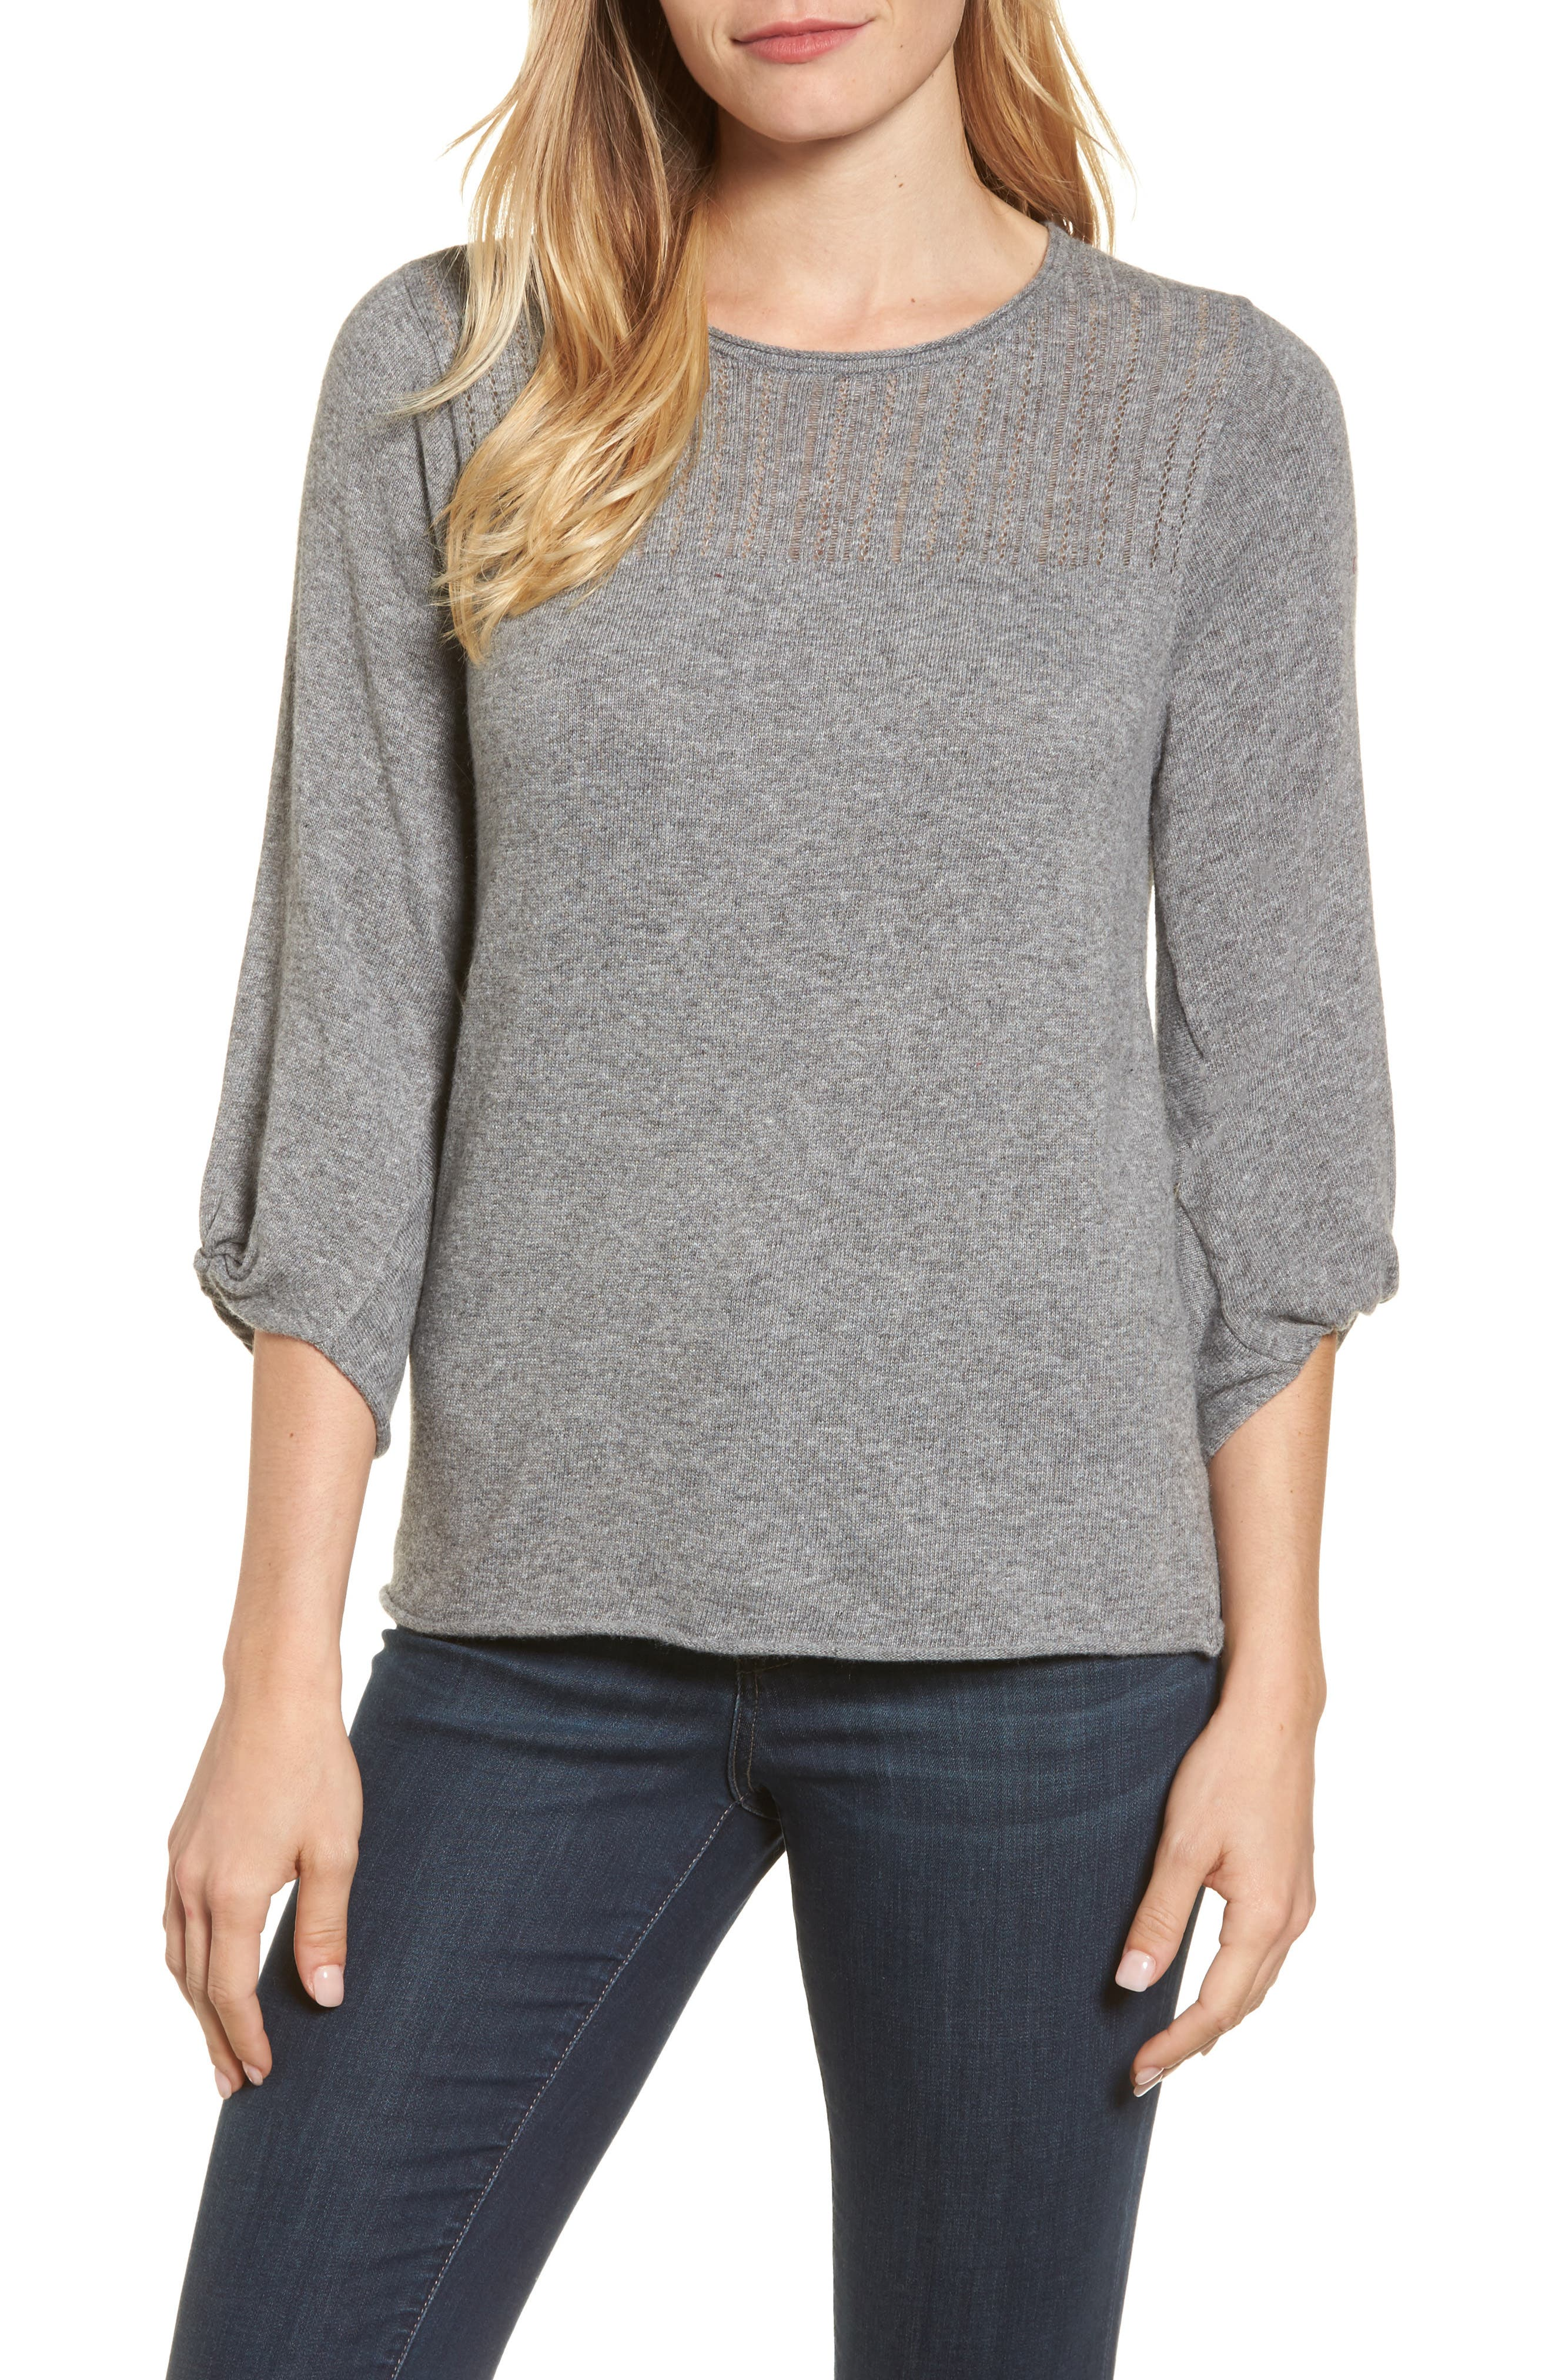 Pointelle Yoke Sweater,                             Main thumbnail 1, color,                             Heather Grey